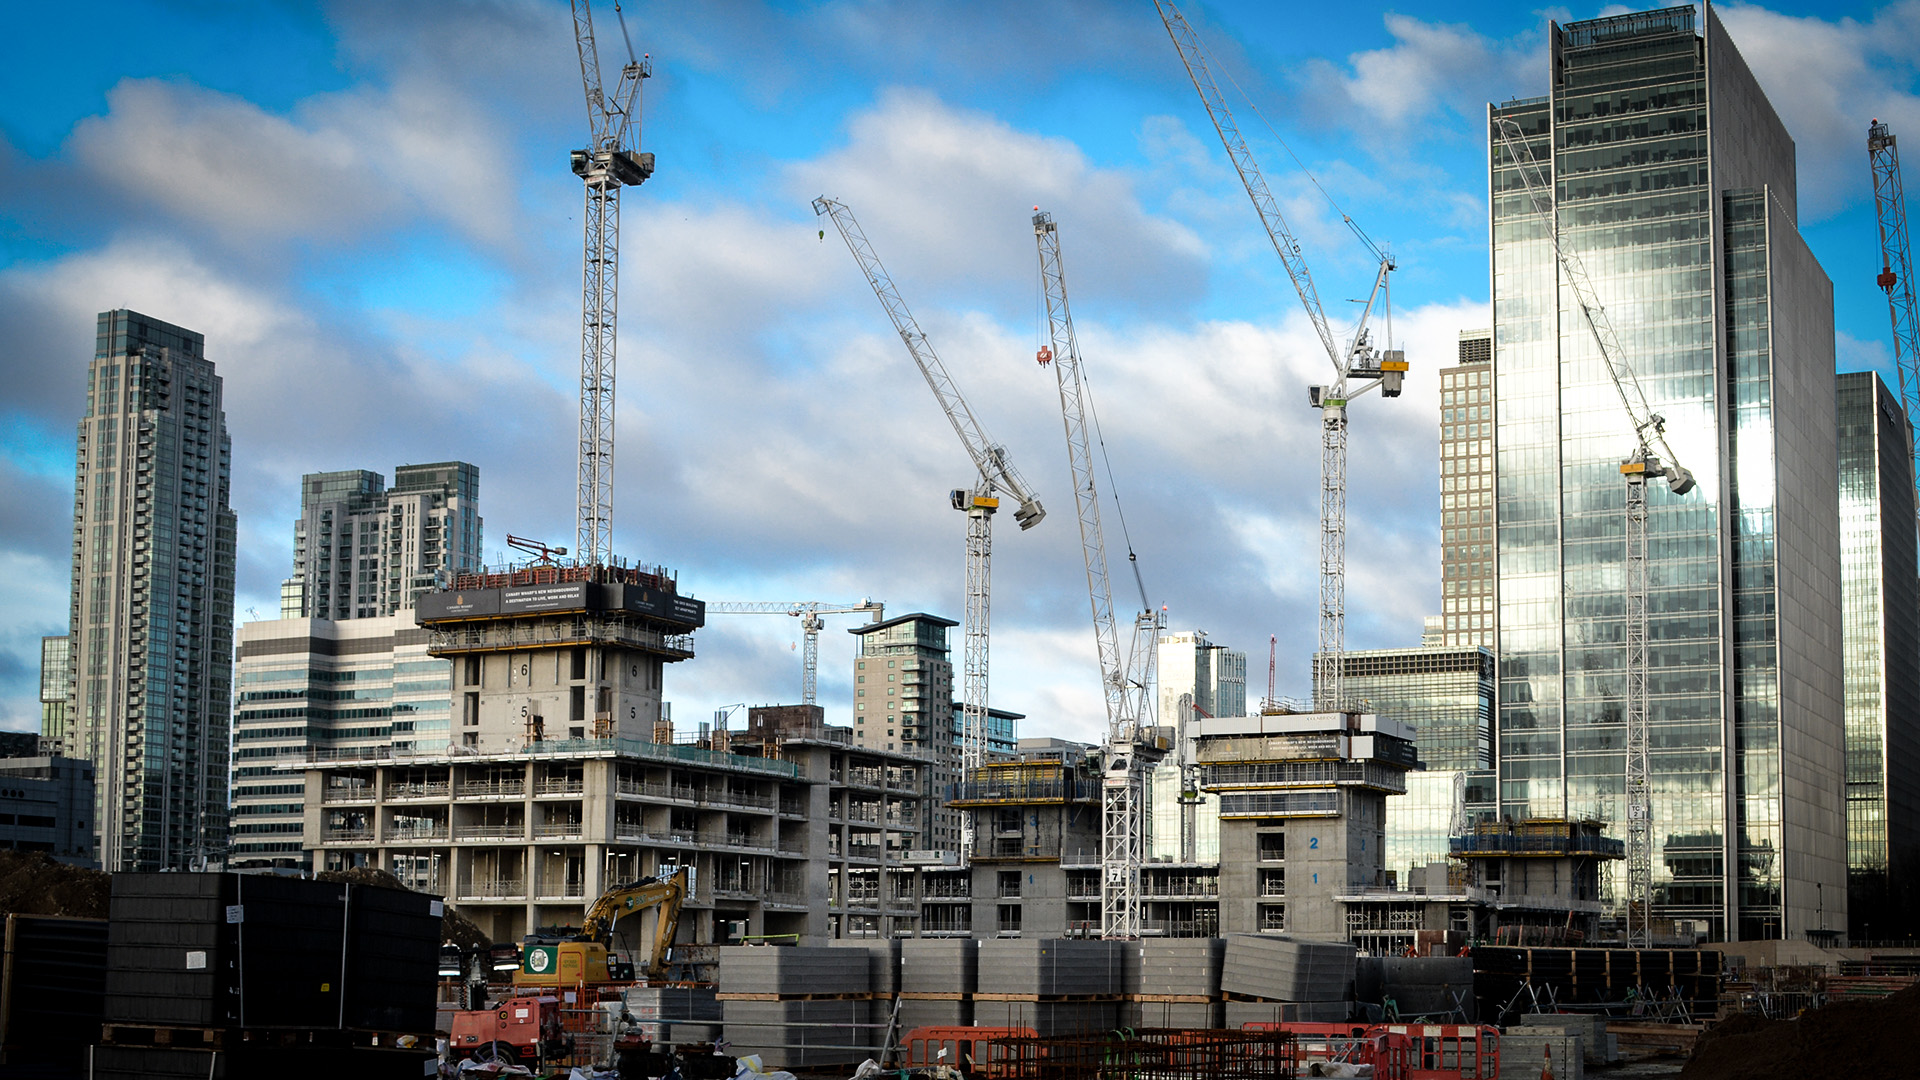 Mesh basket system provides space solution on Canary Wharf site